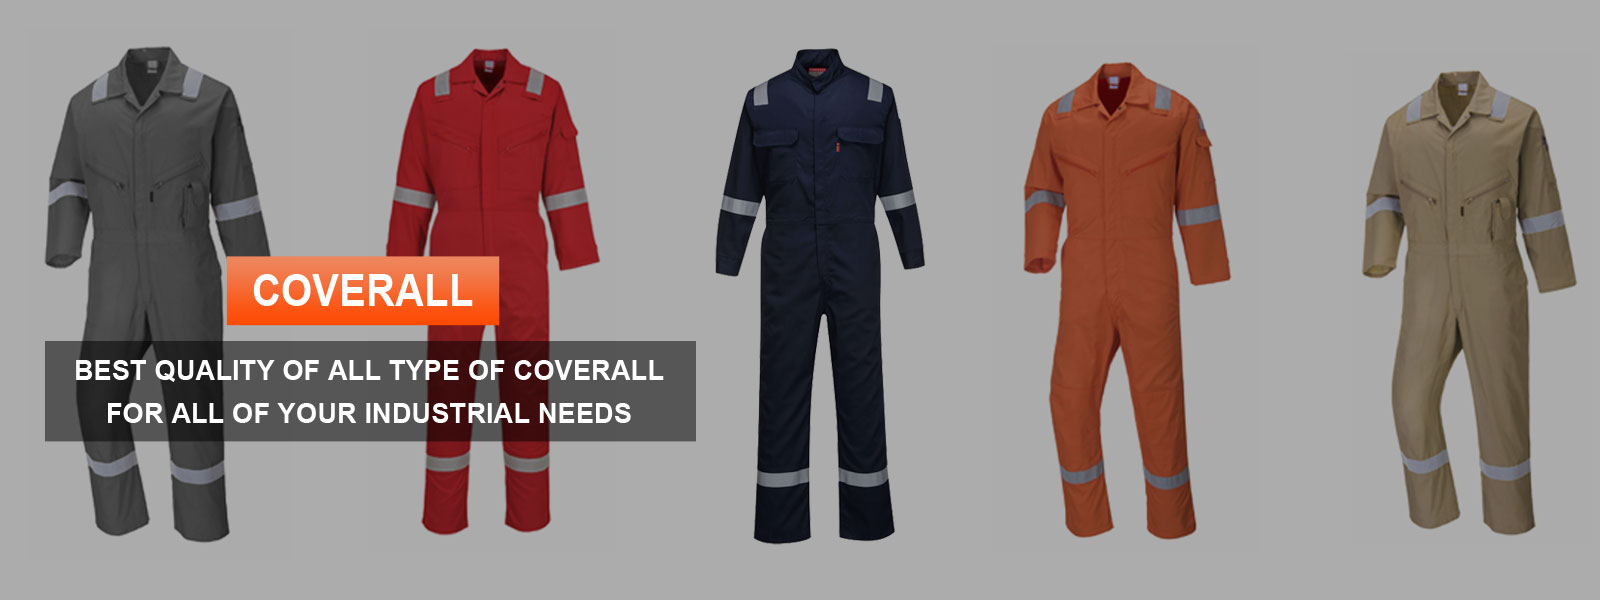 Coverall Manufacturers in Ecuador